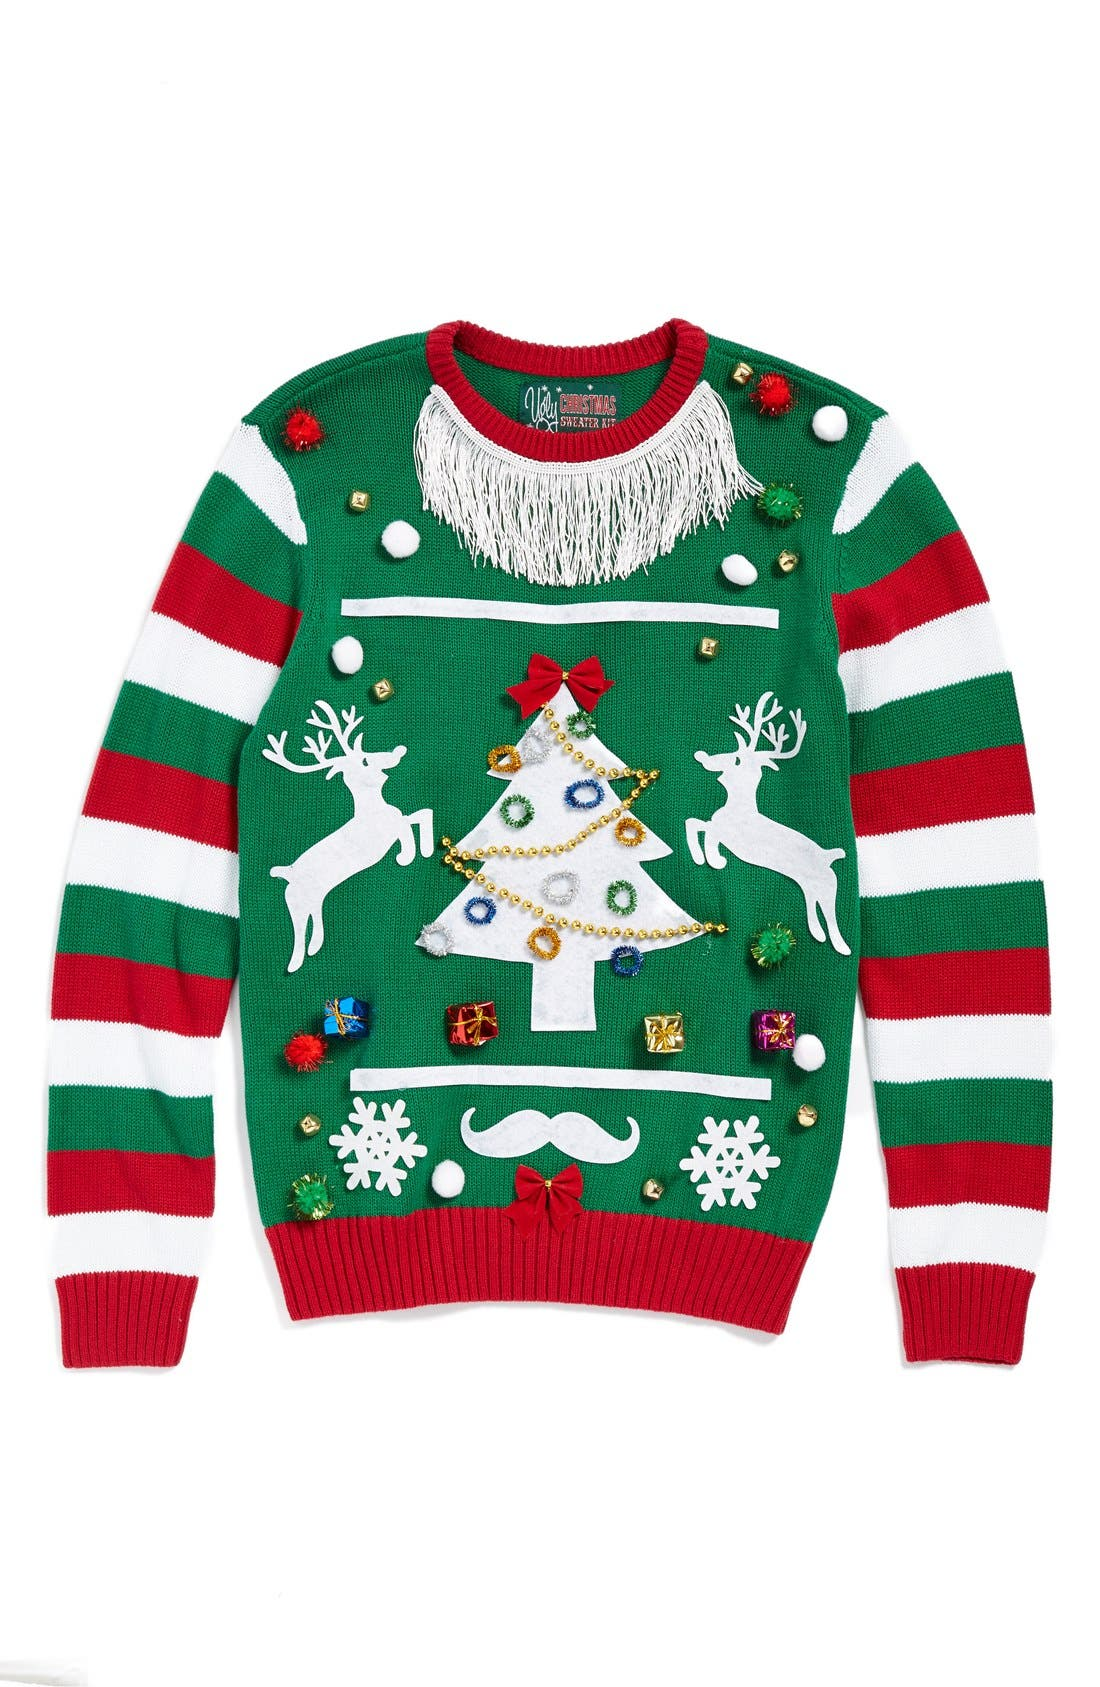 Alternate Image 1 Selected - Ugly Christmas Sweater 'Make Your Own - Green Stripe' Sweater Kit